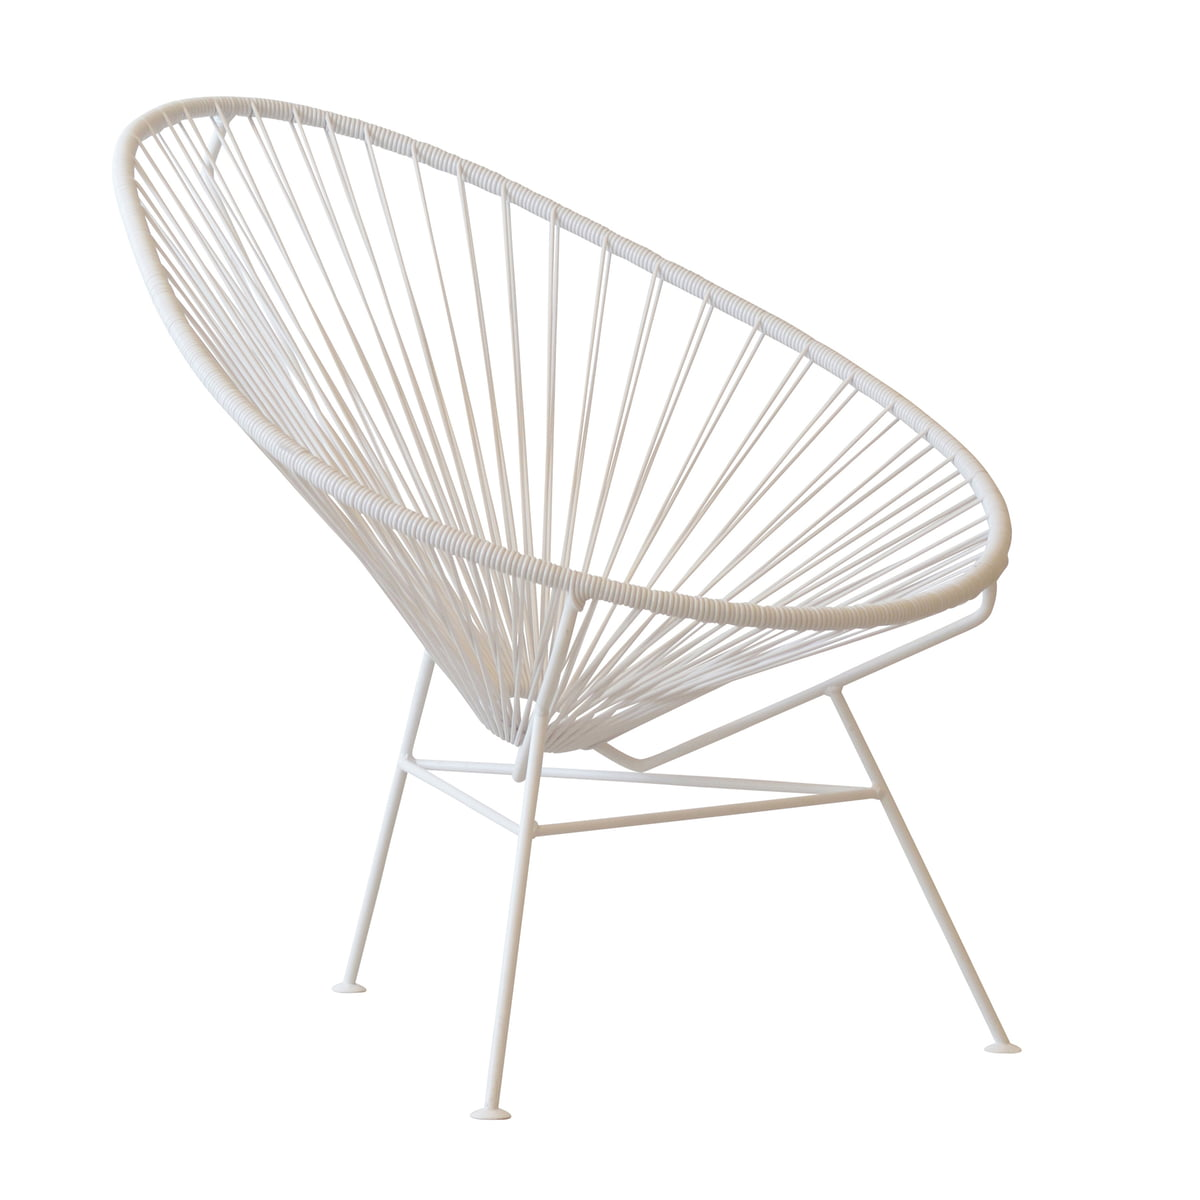 Acapulco chair dimensions - Ok Design The Acapulco Chair White